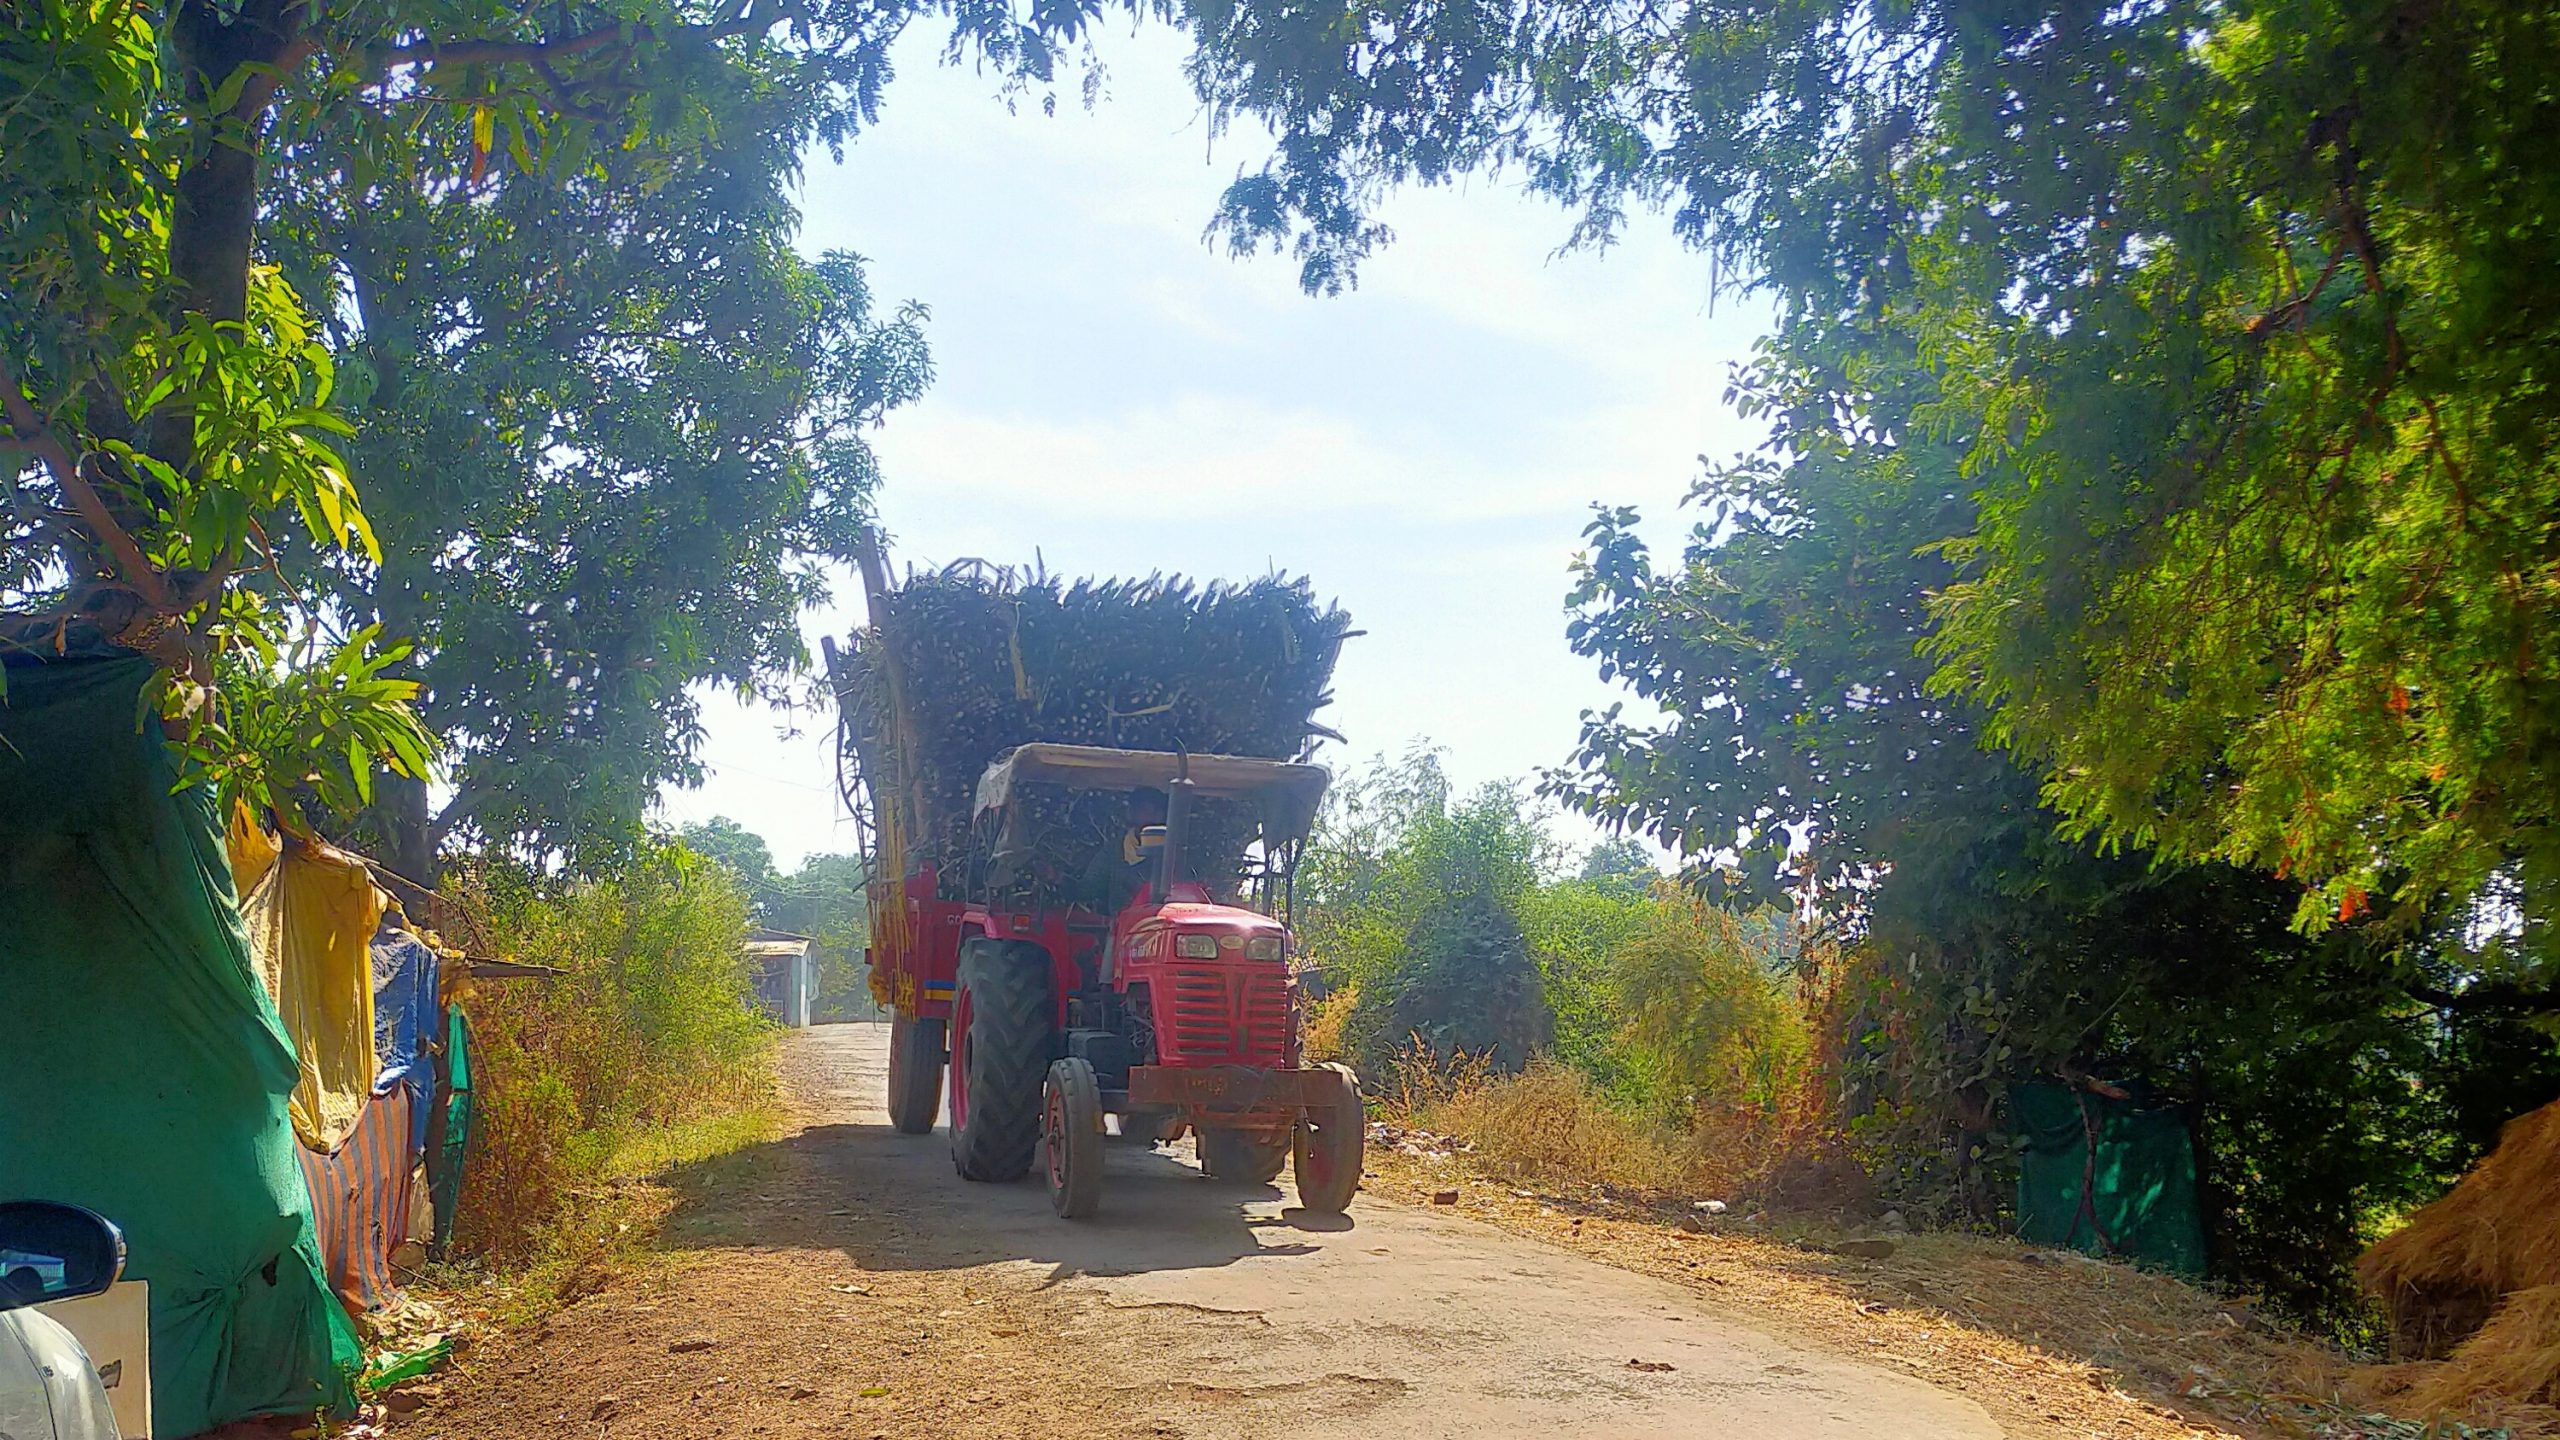 A tractor carrying load